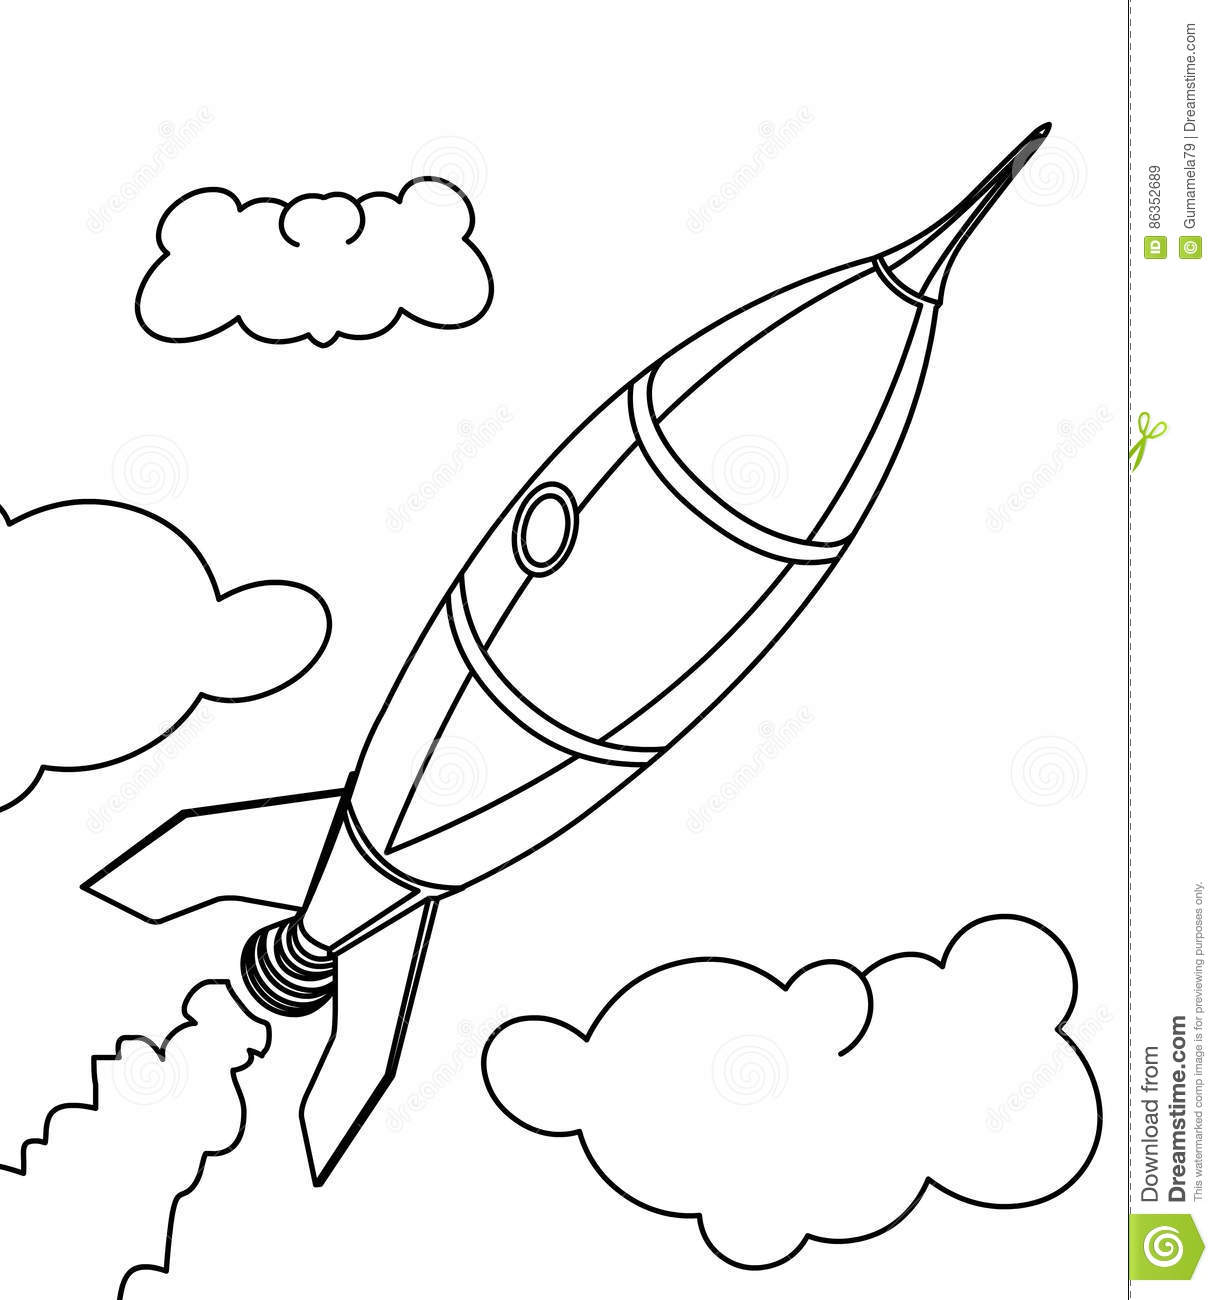 Rocket Ship Popular Easy Coloring Pictures